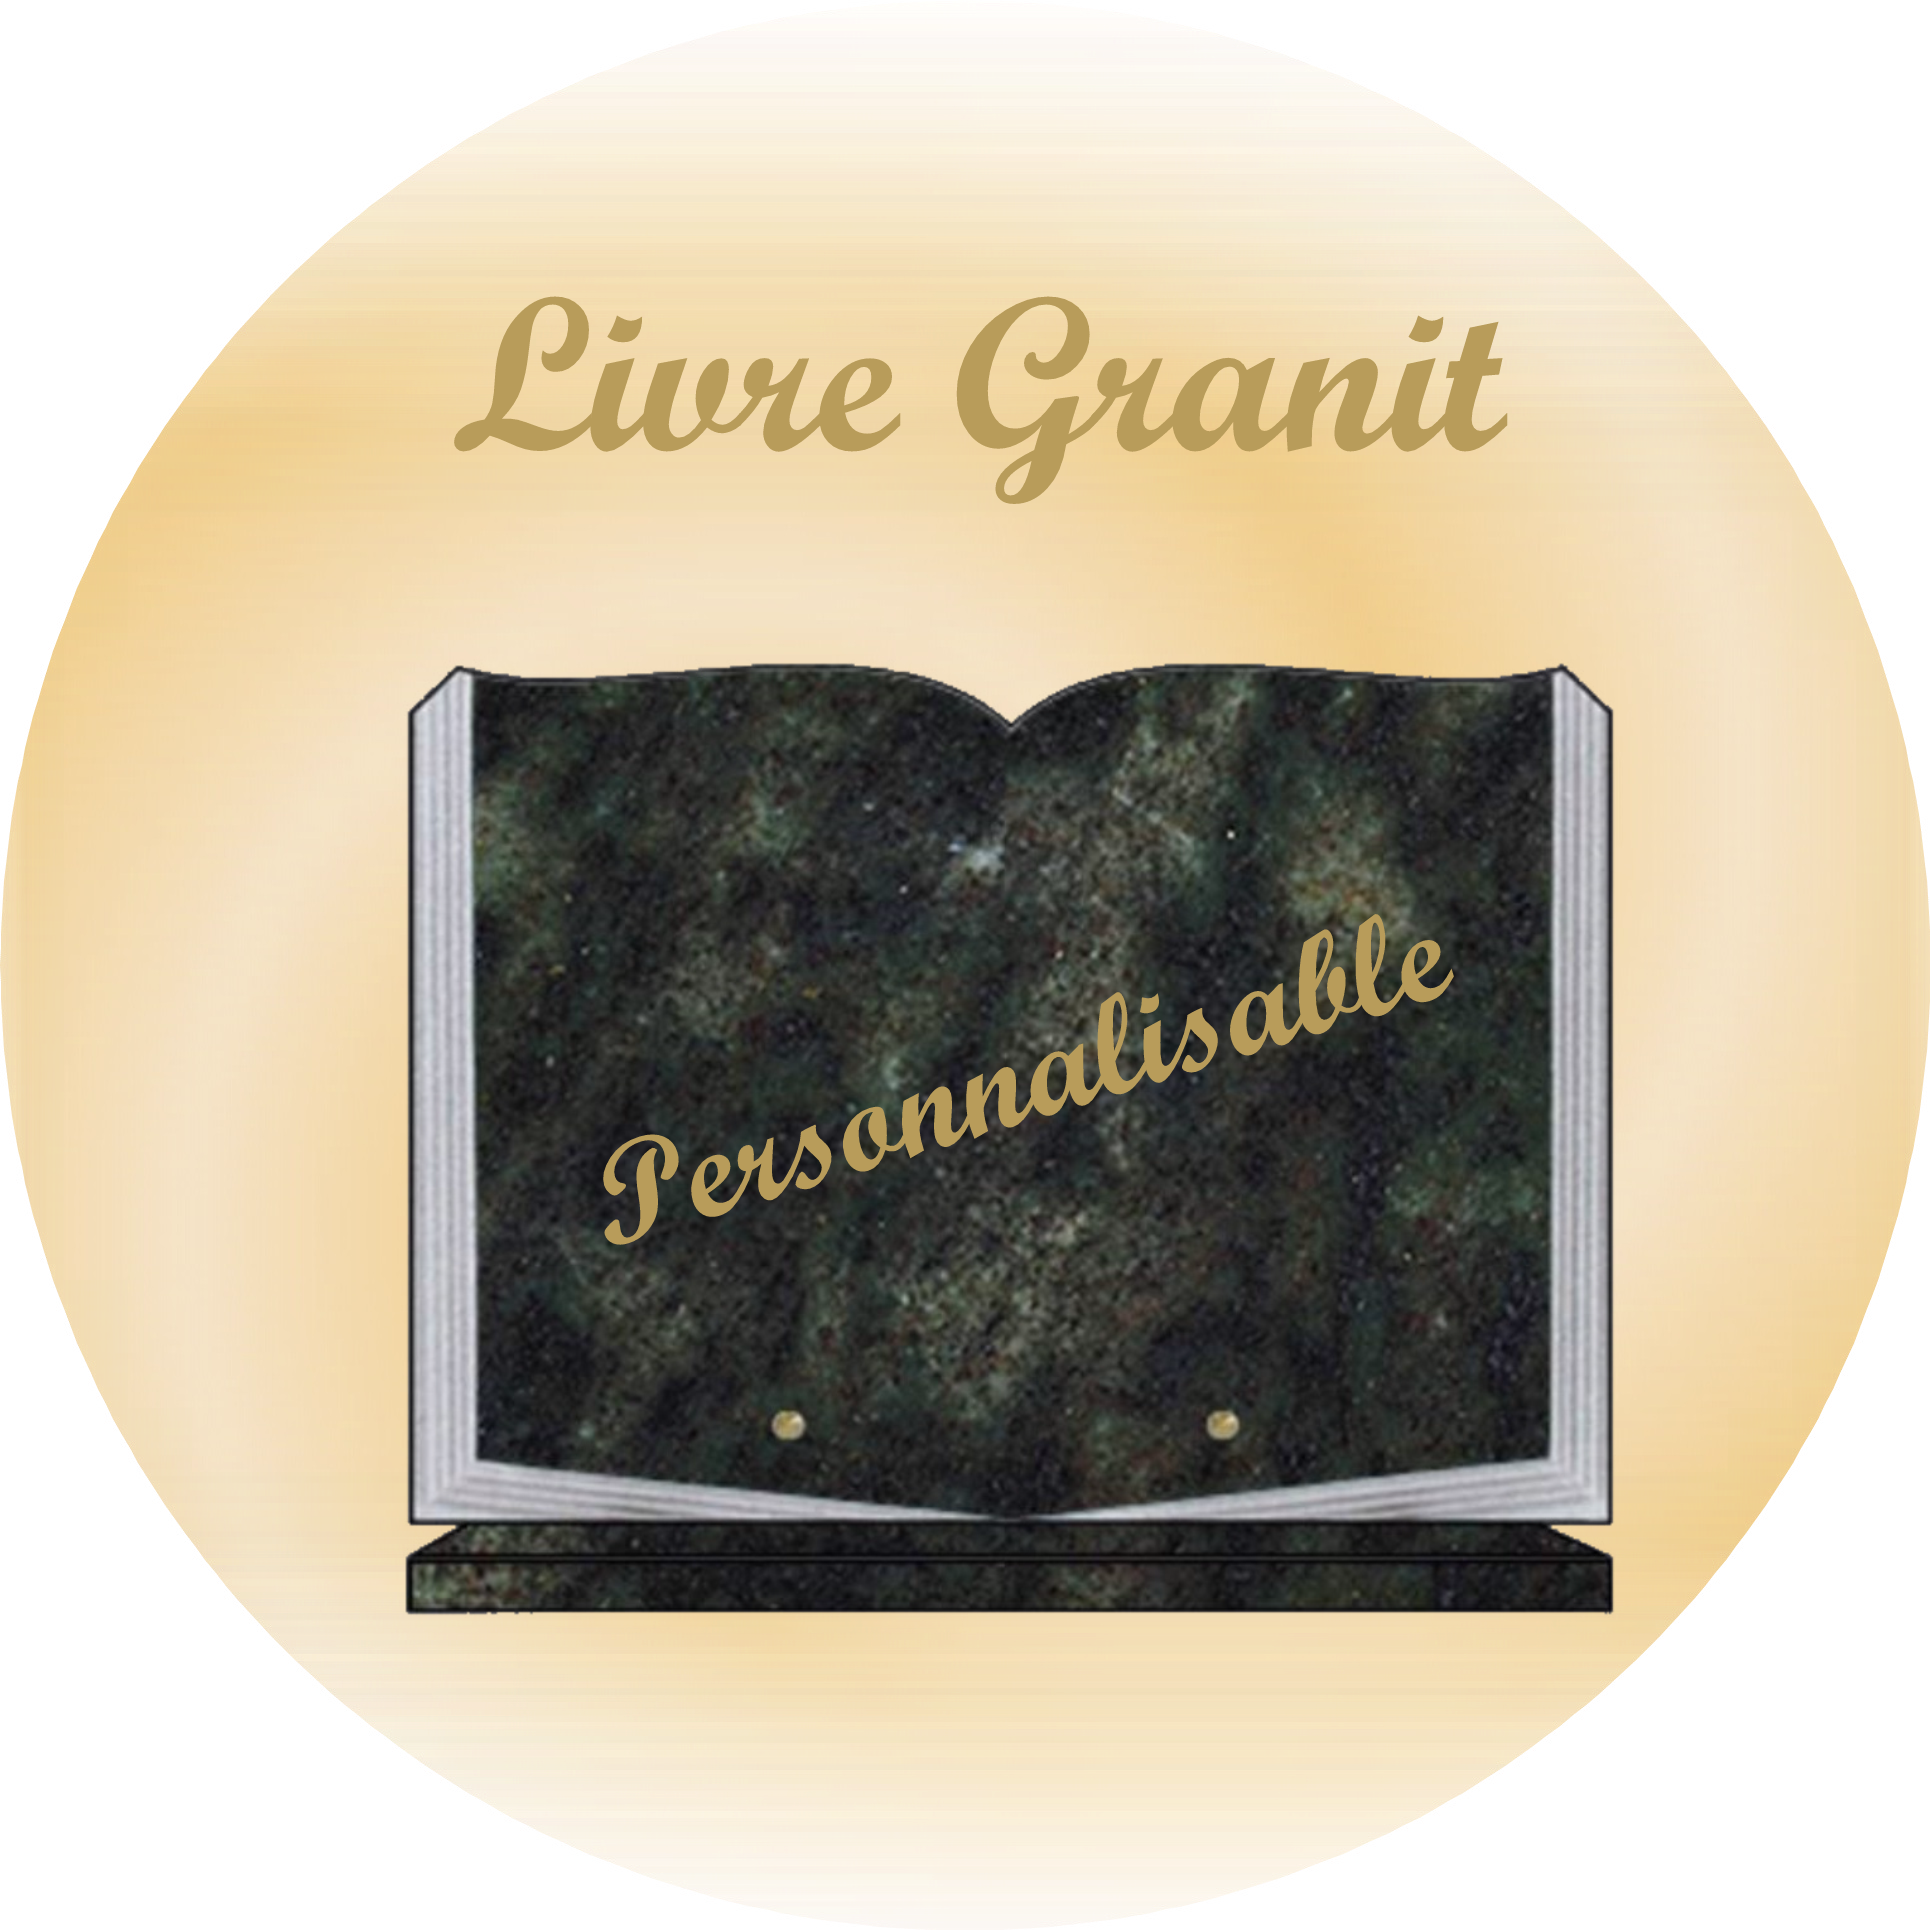 les plaques granit livres plaque funeraire moderne. Black Bedroom Furniture Sets. Home Design Ideas